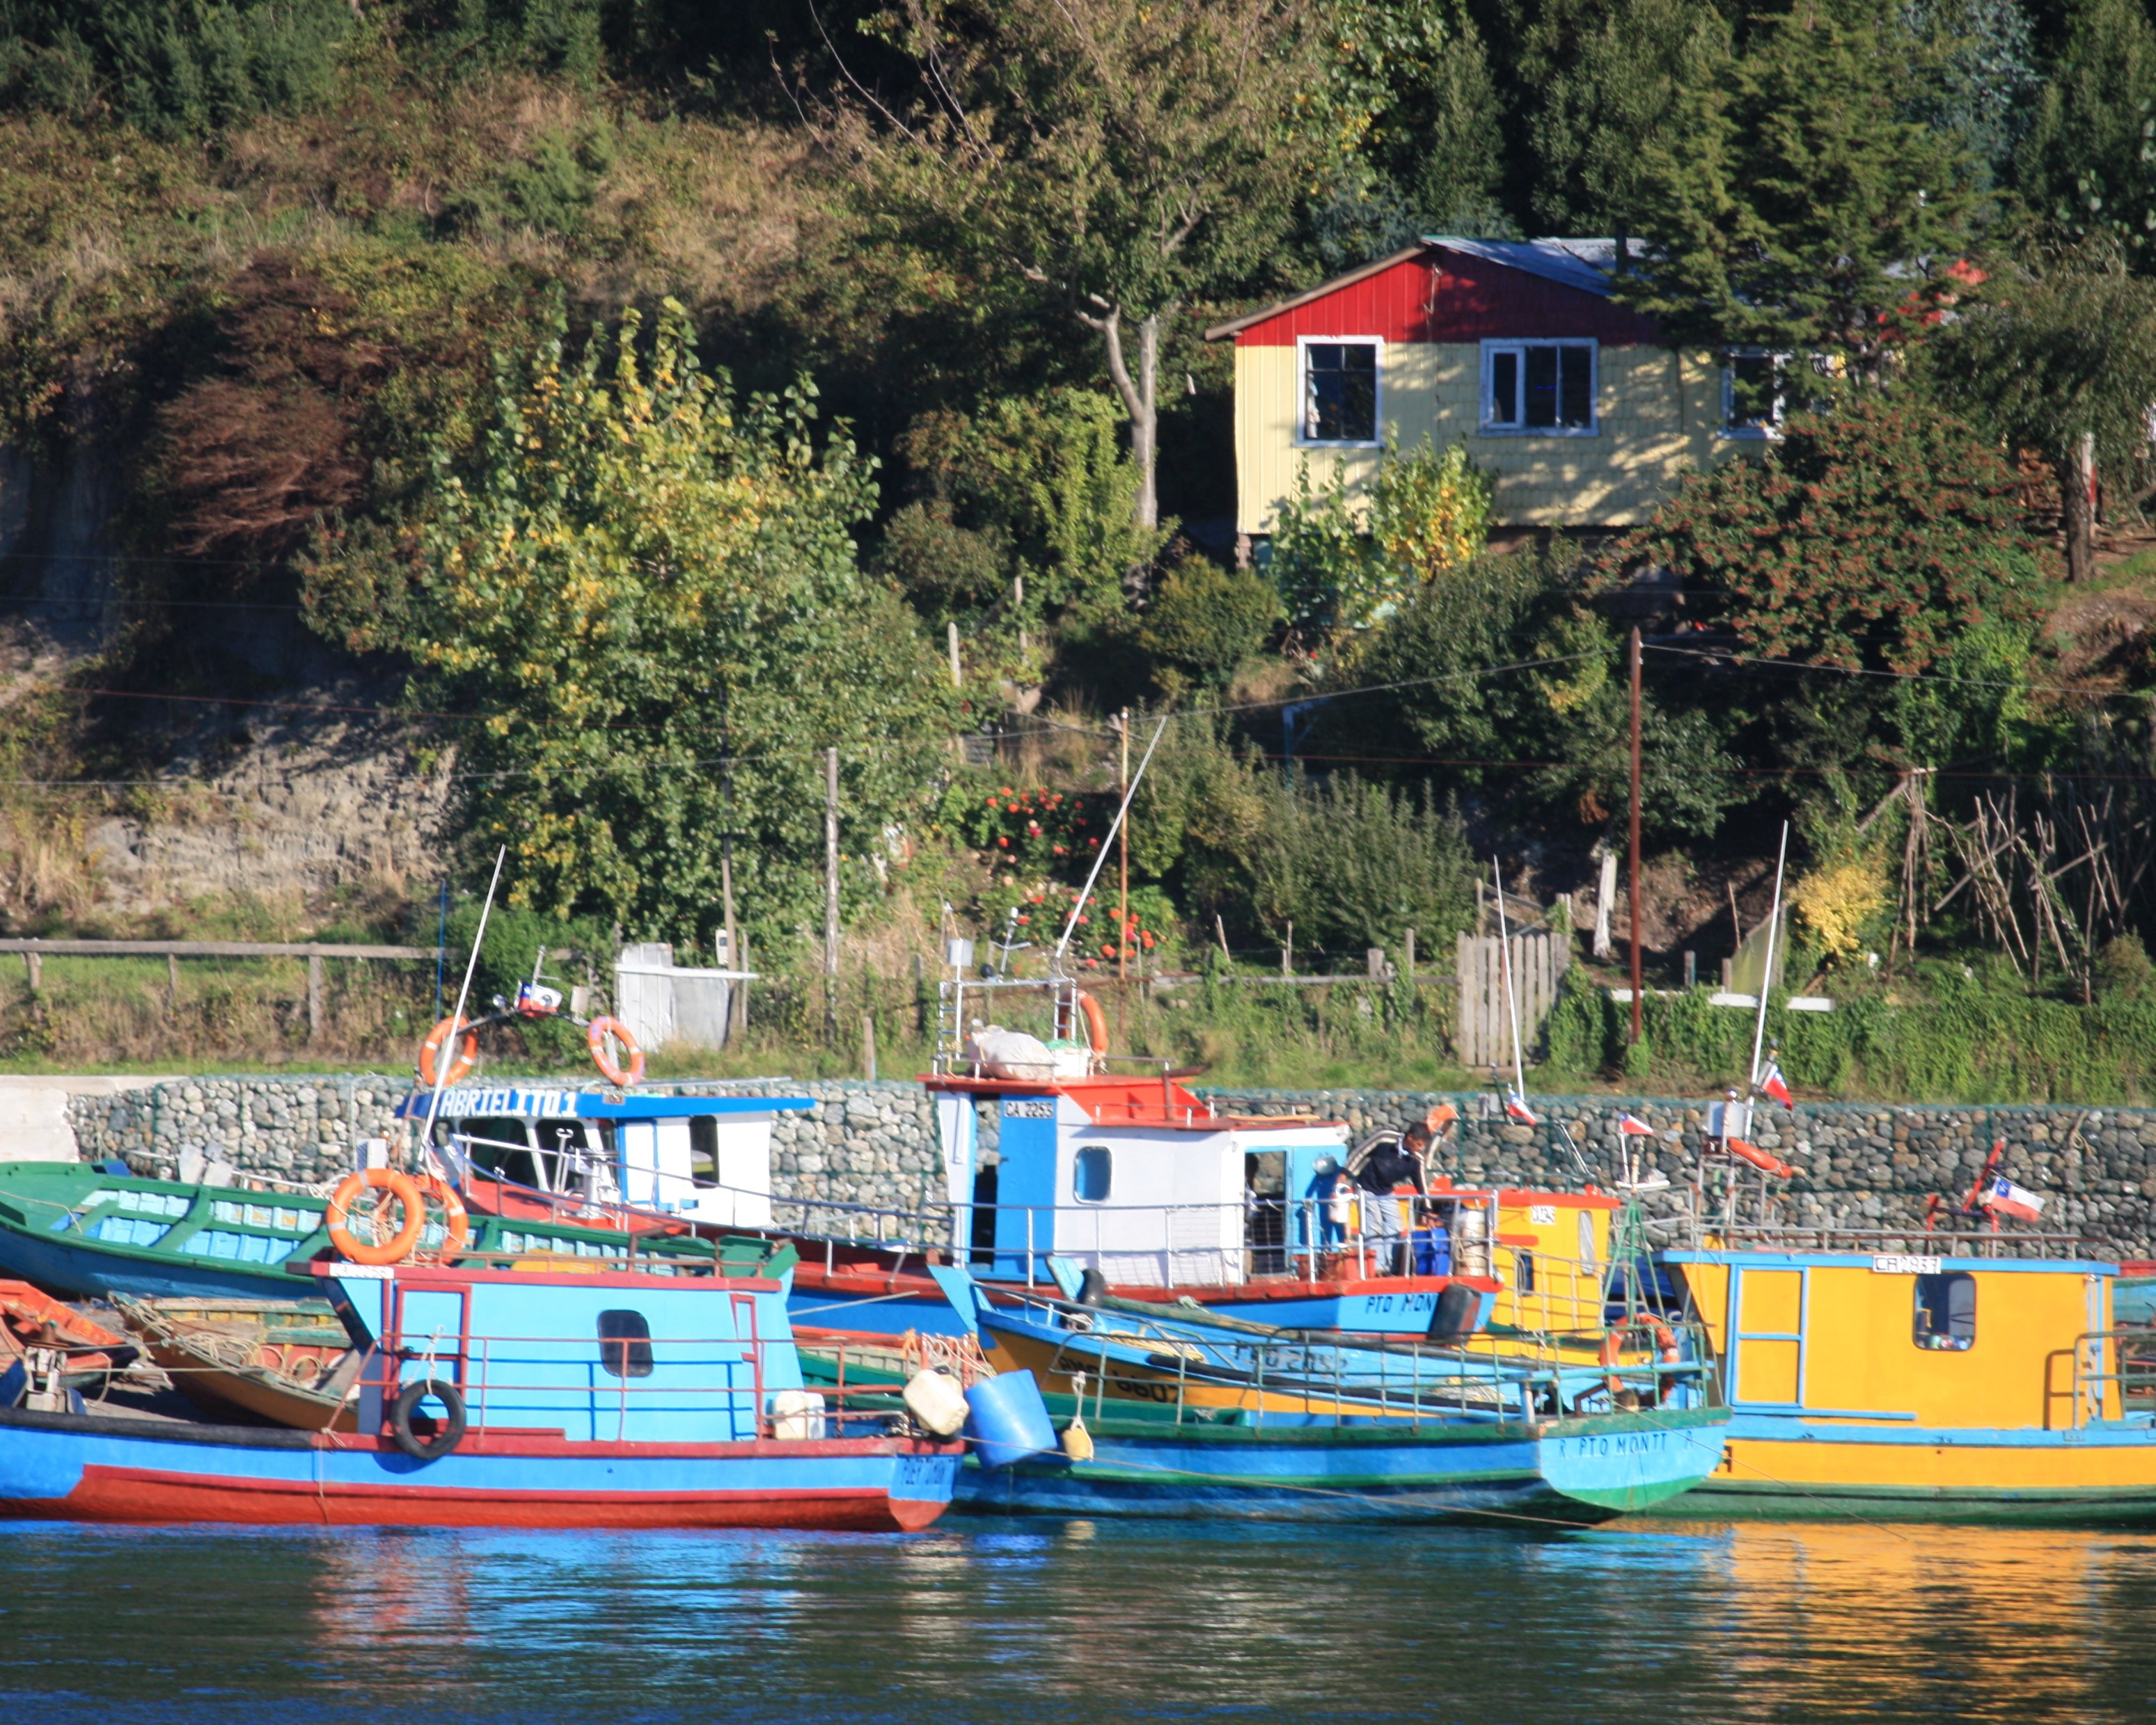 Boats, Puerto Montt, Chile